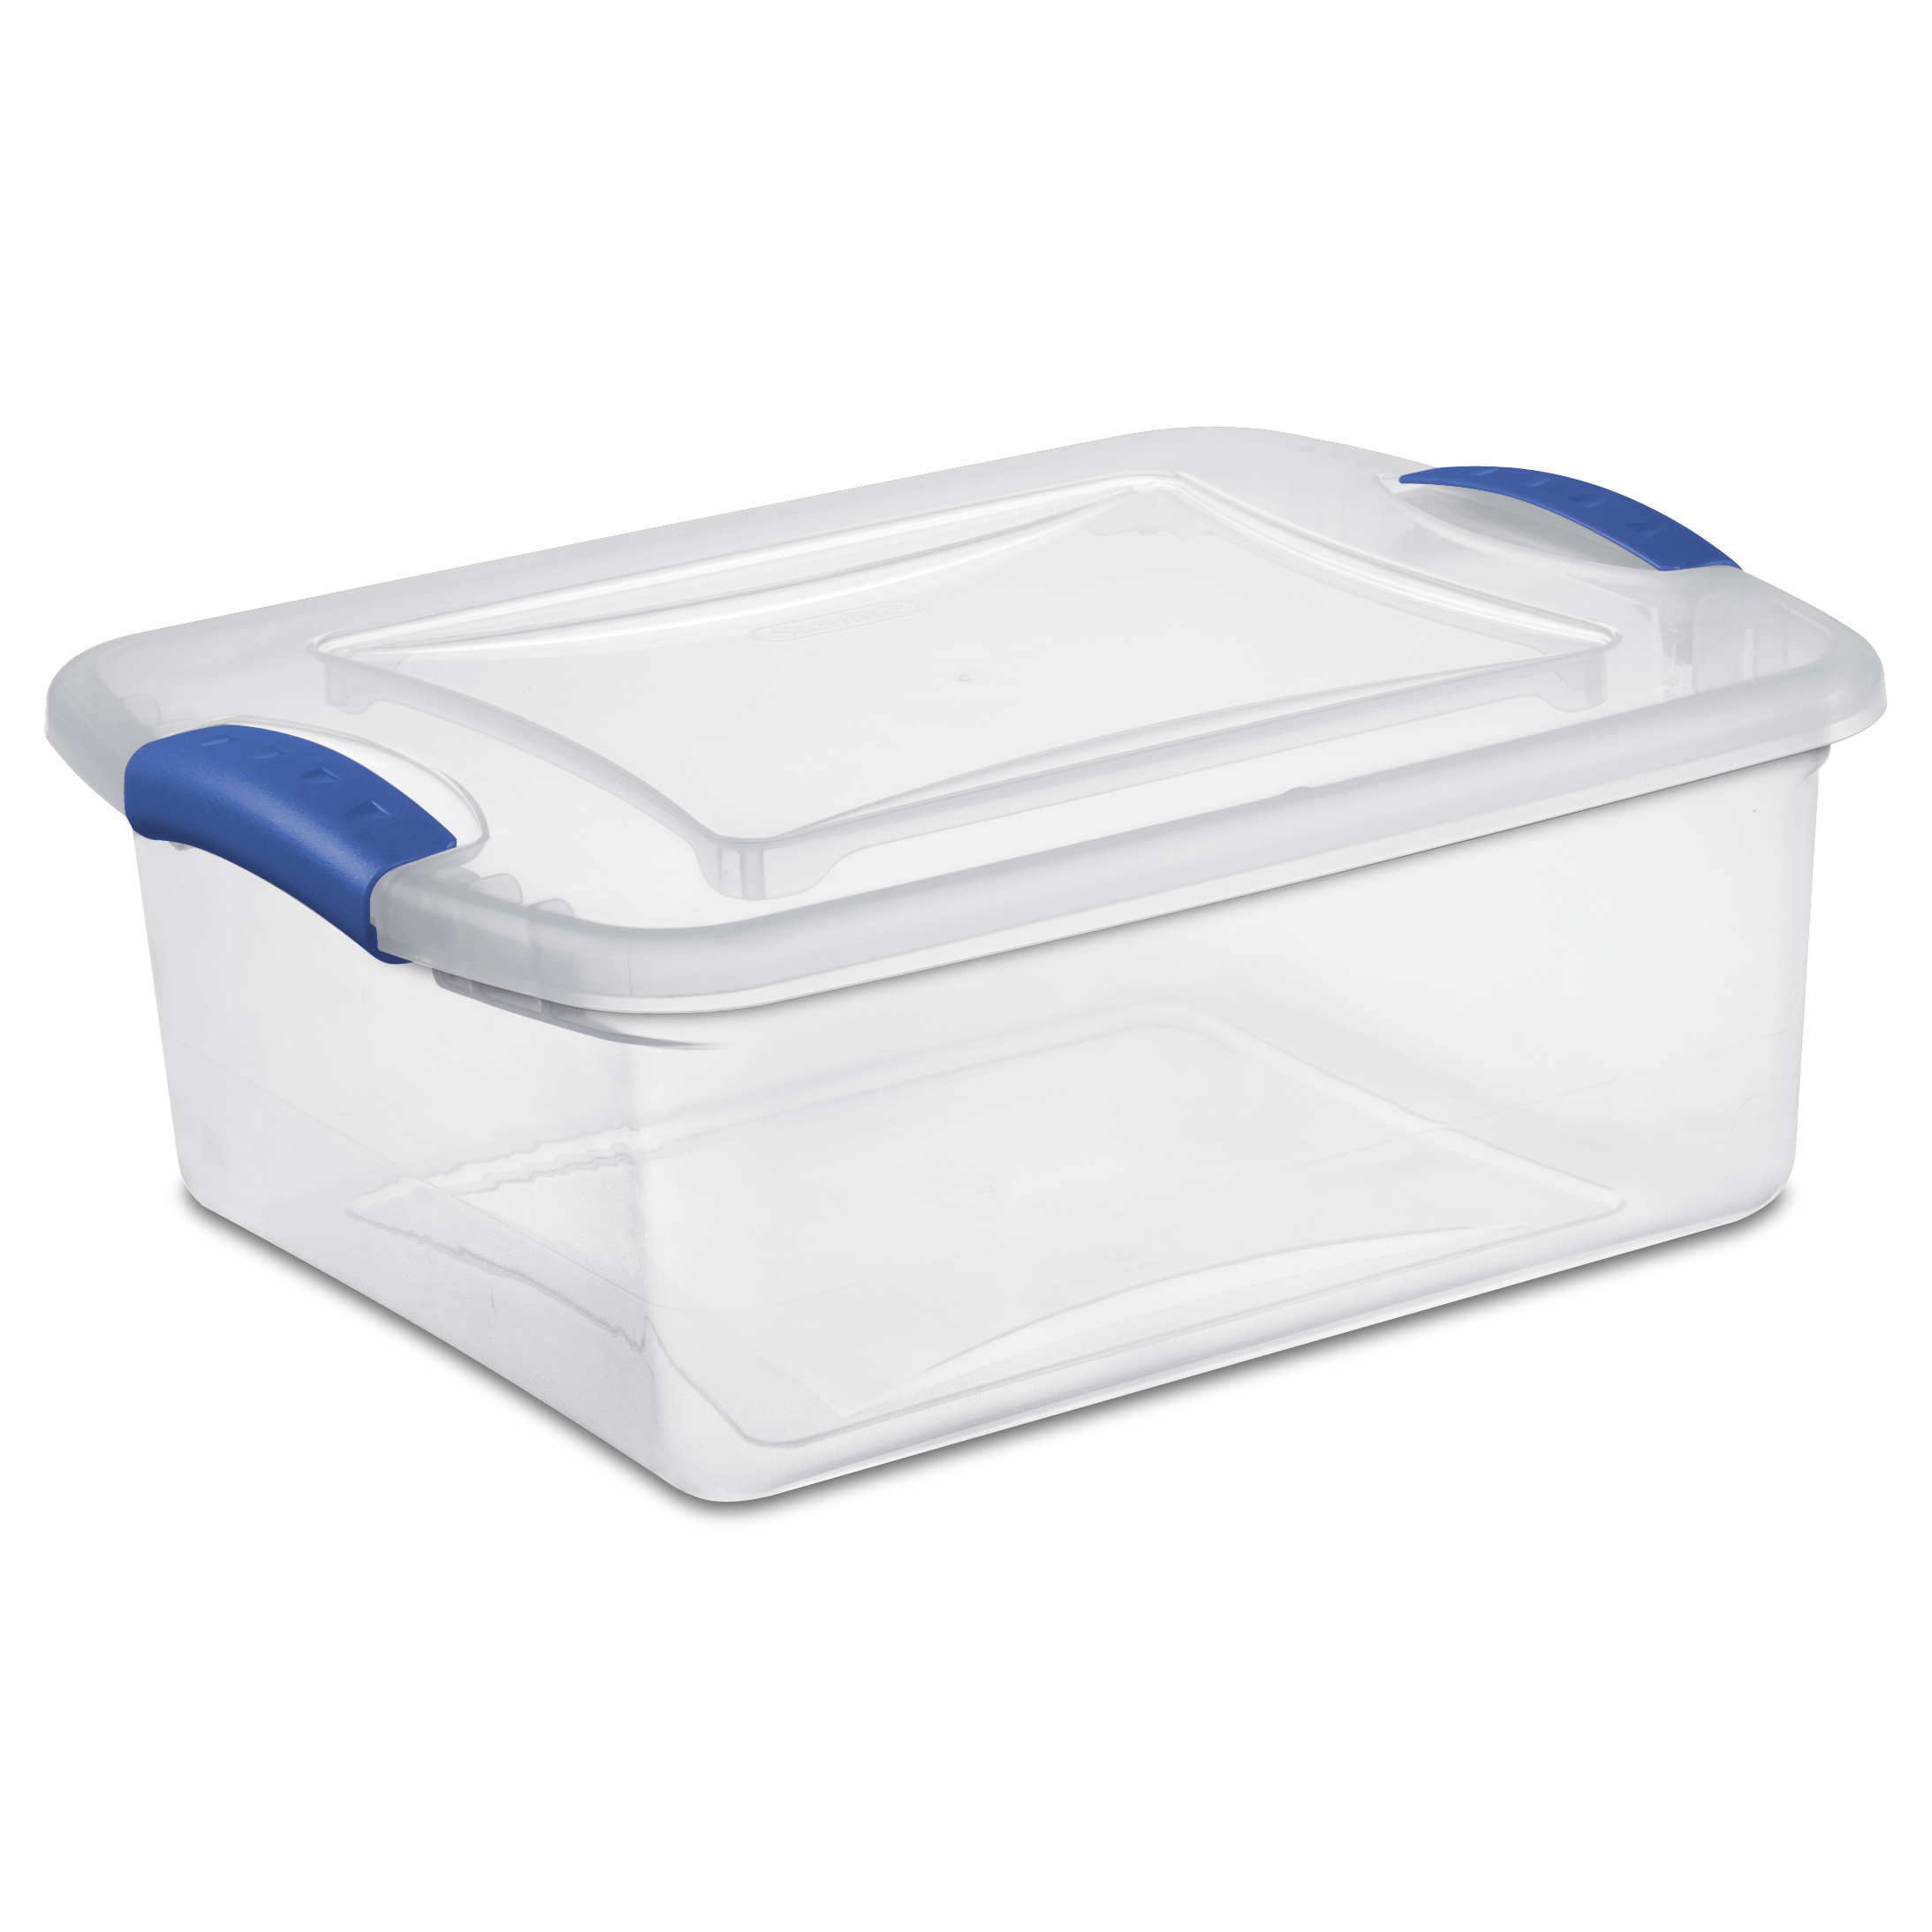 Sterilite 15 Qt./14 L Latch Box, Stadium Blue